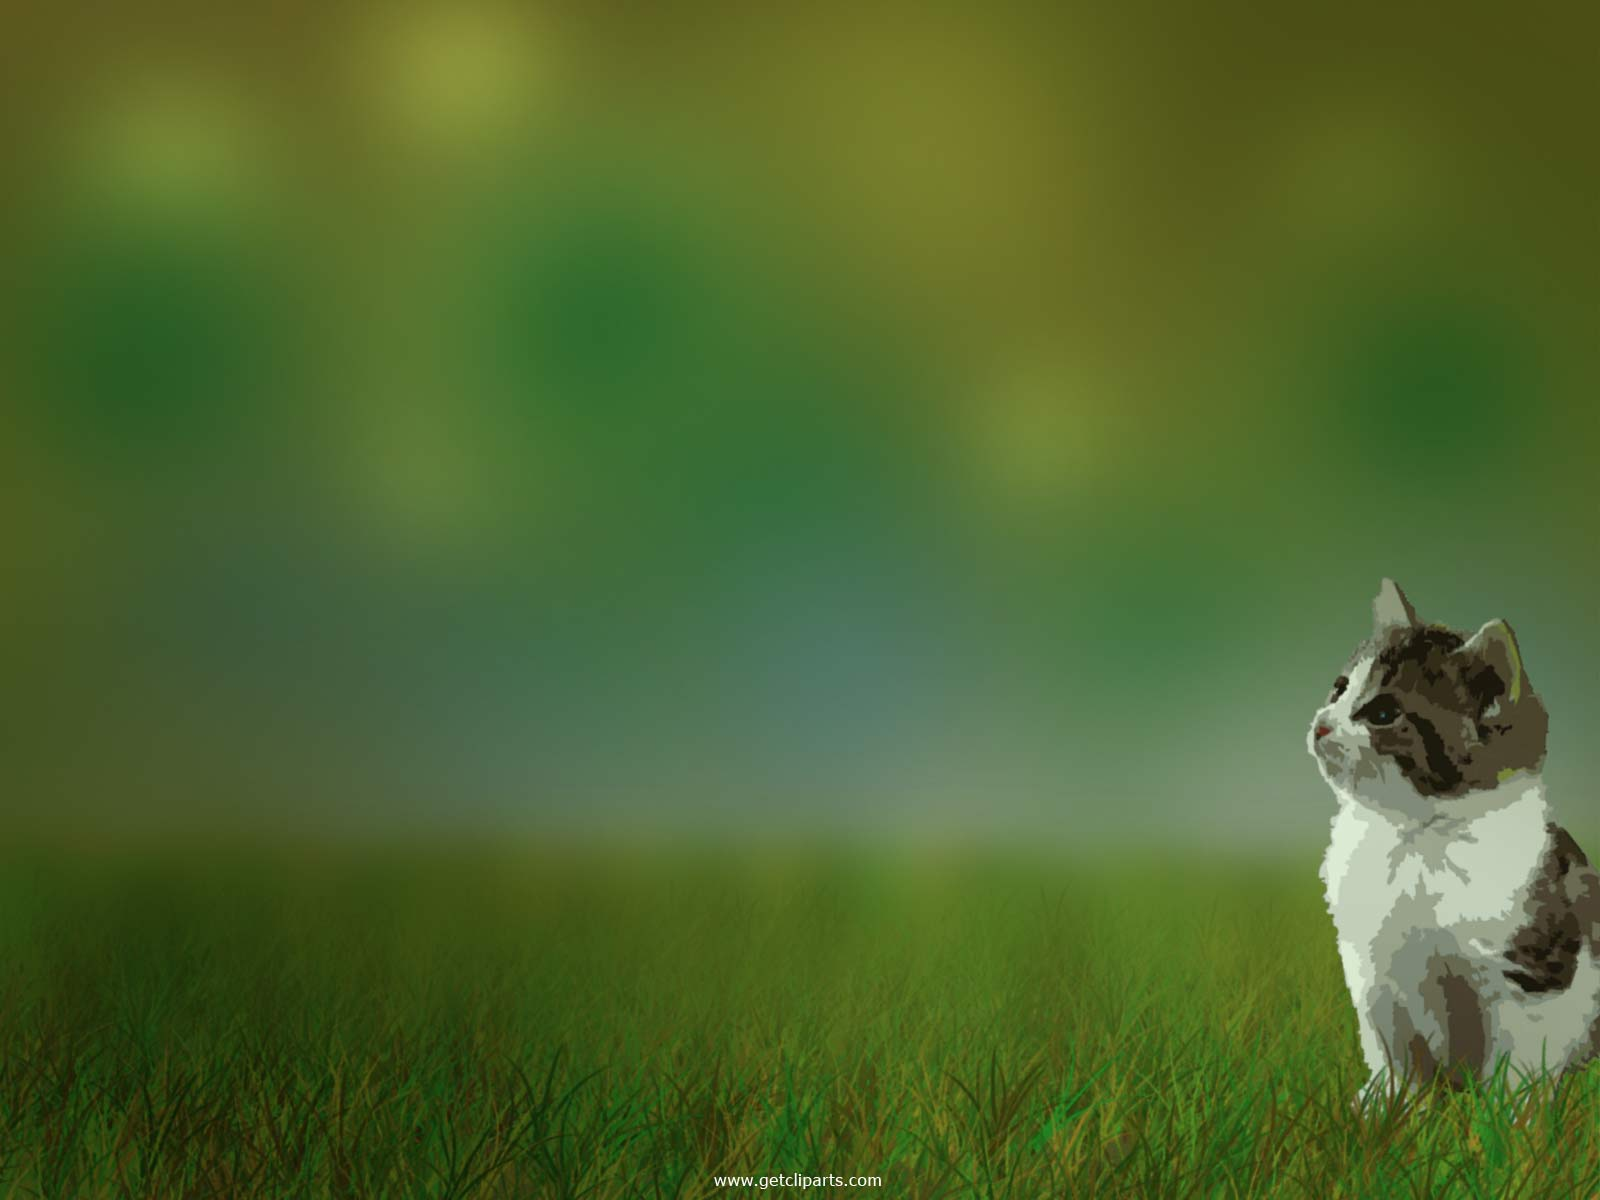 hdFunny cat wallpaper desktopFunny cat wallpaperFunny animals 1600x1200